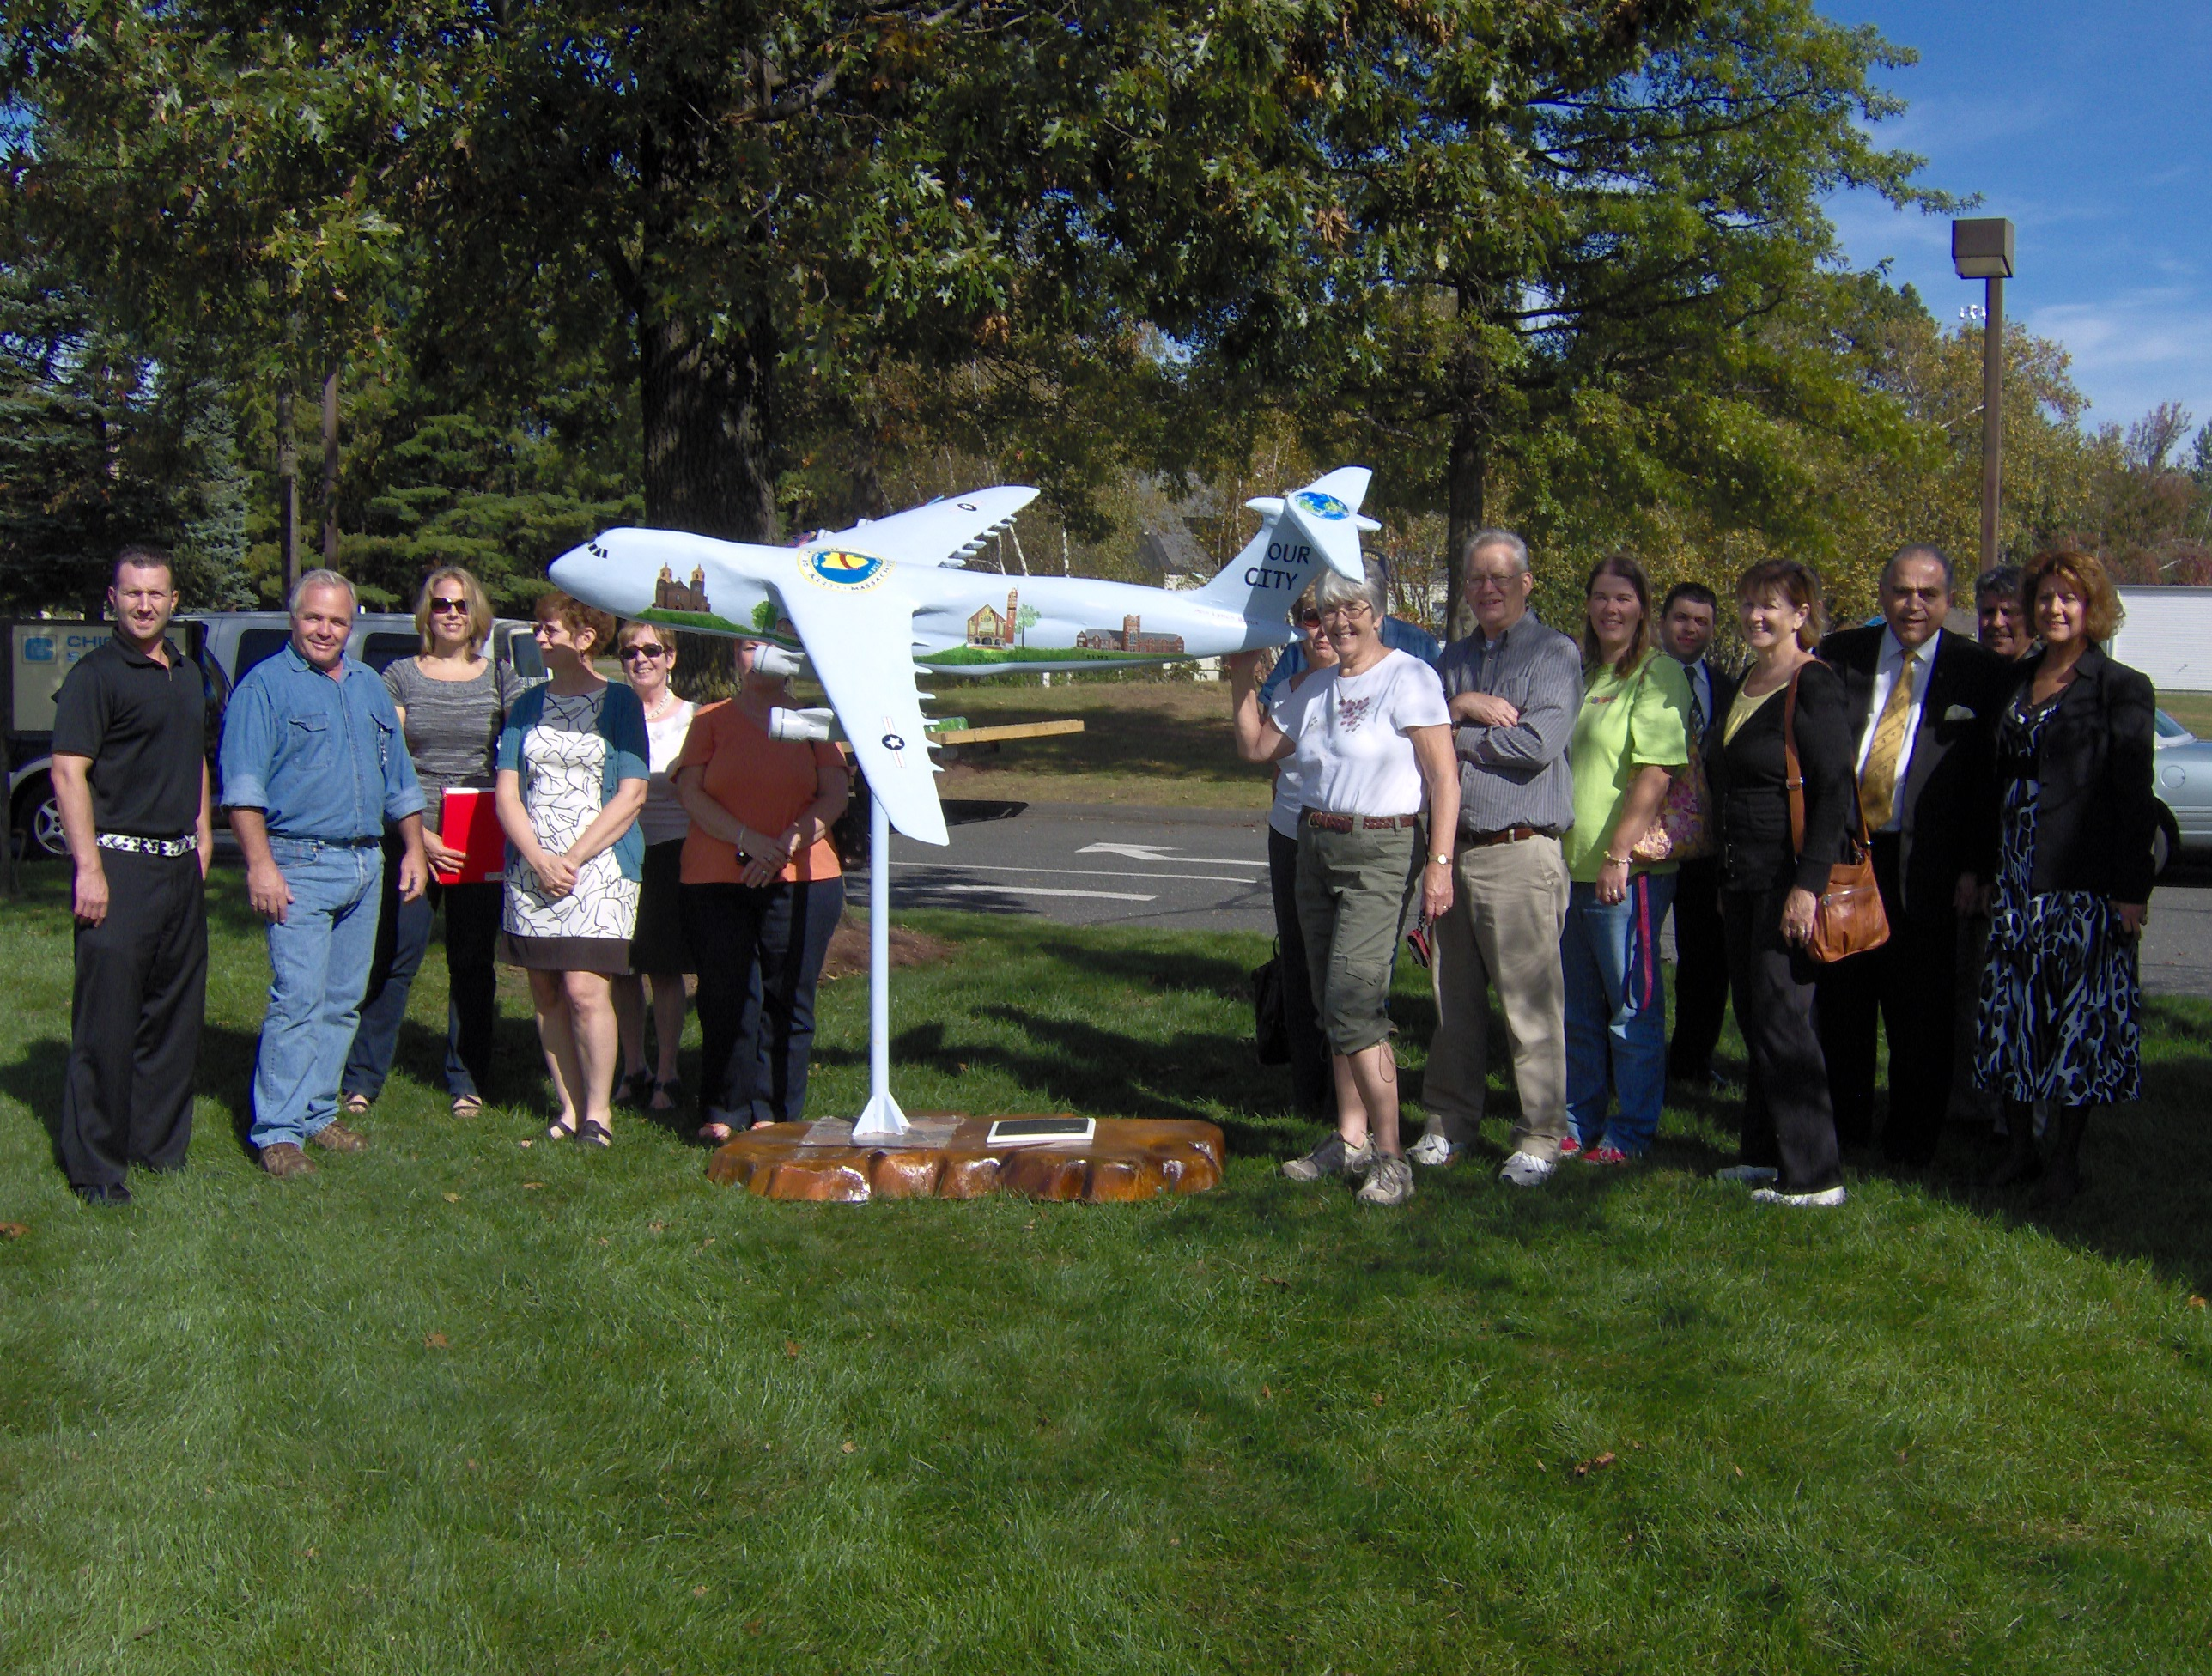 People gathered with Our City airplane model